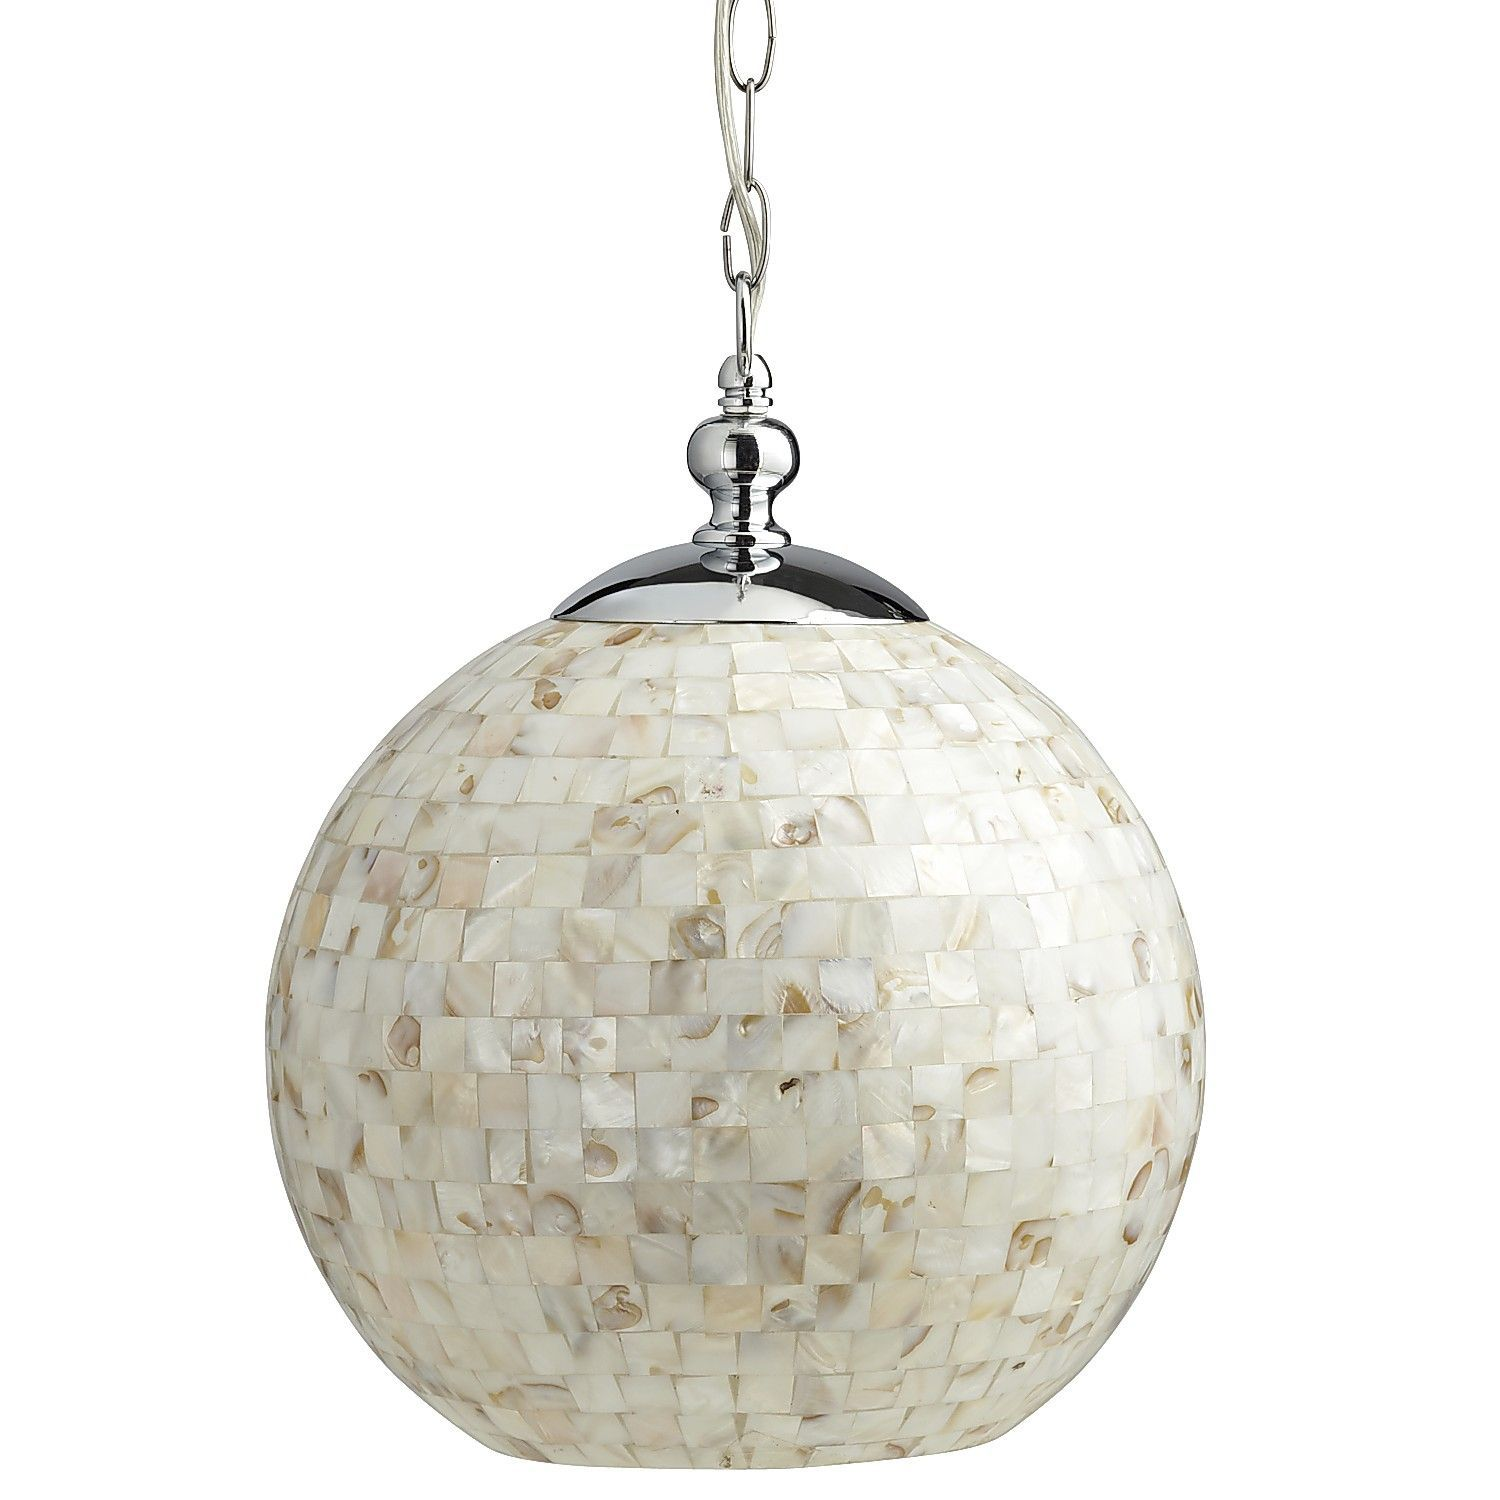 Pier 1 mother of pearl hanging lamp is contemporary and elegant pier 1 mother of pearl hanging lamp is contemporary and elegant arubaitofo Gallery